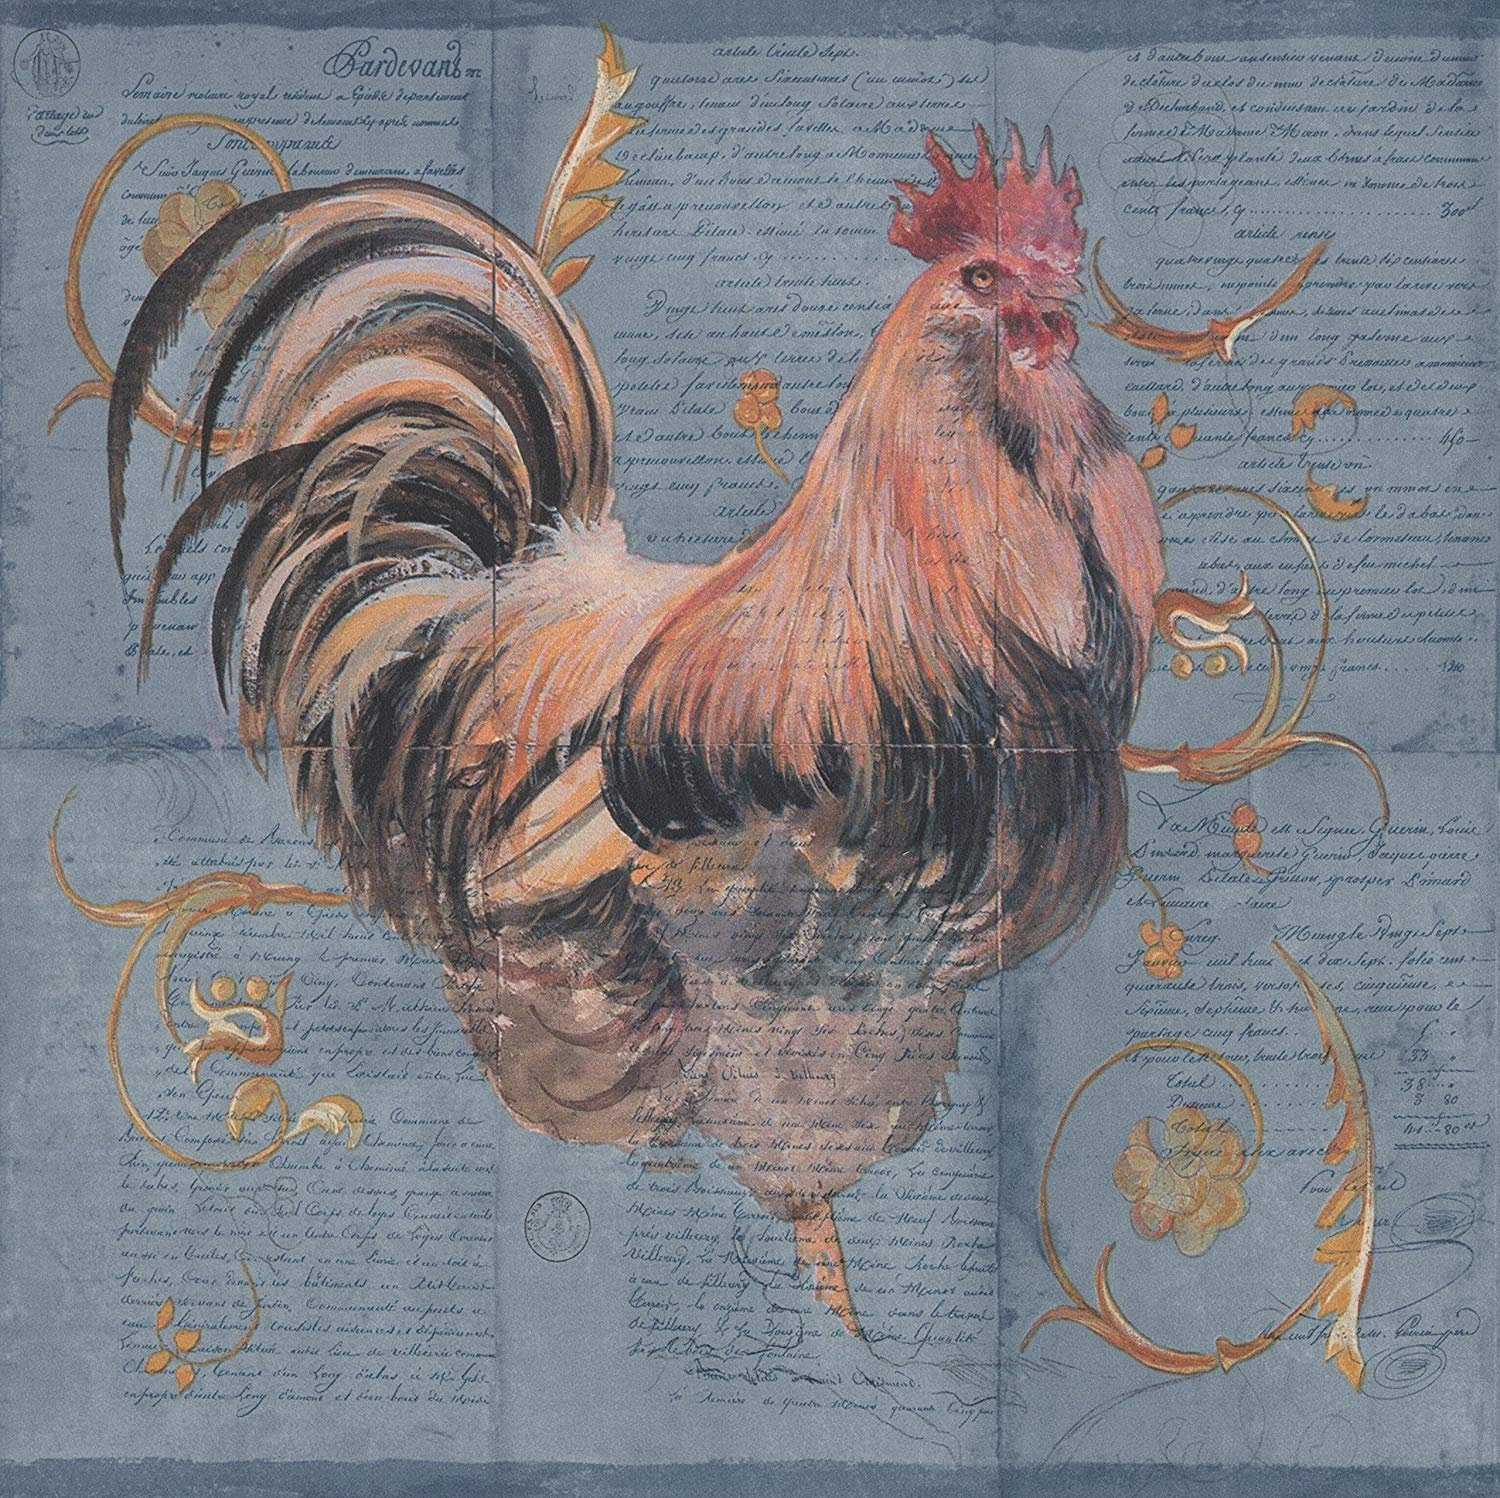 Amazoncom Abstract Rooster Chicken Chicks on Letter Pages 1500x1498